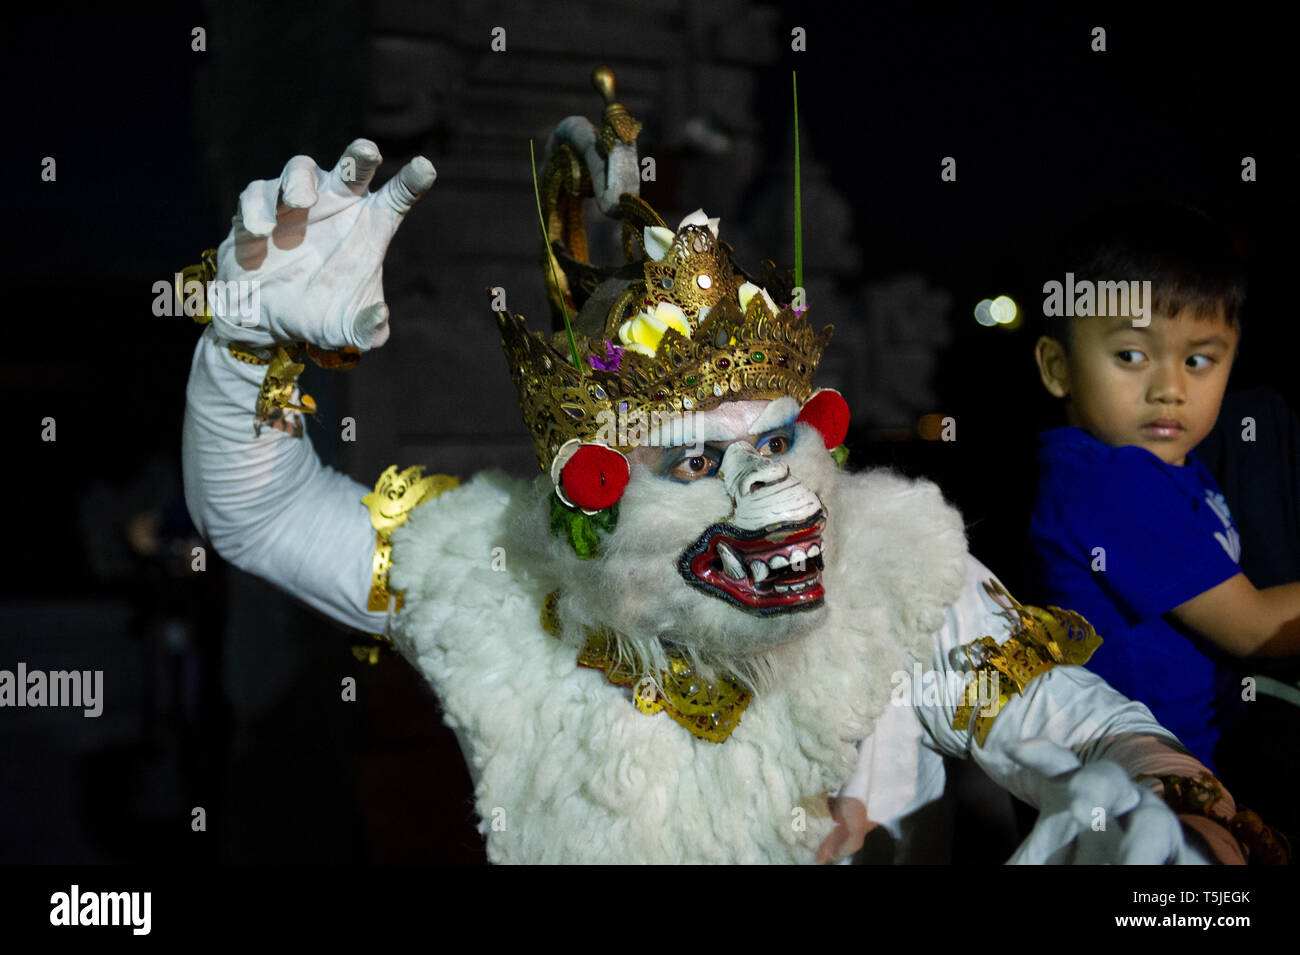 Hanuman posing for tourists and a slightly shocked child at the Kecak Dance at Uluwatu Temple (Pura Luhur Uluwatu) in Bali, Indonesia - Stock Image